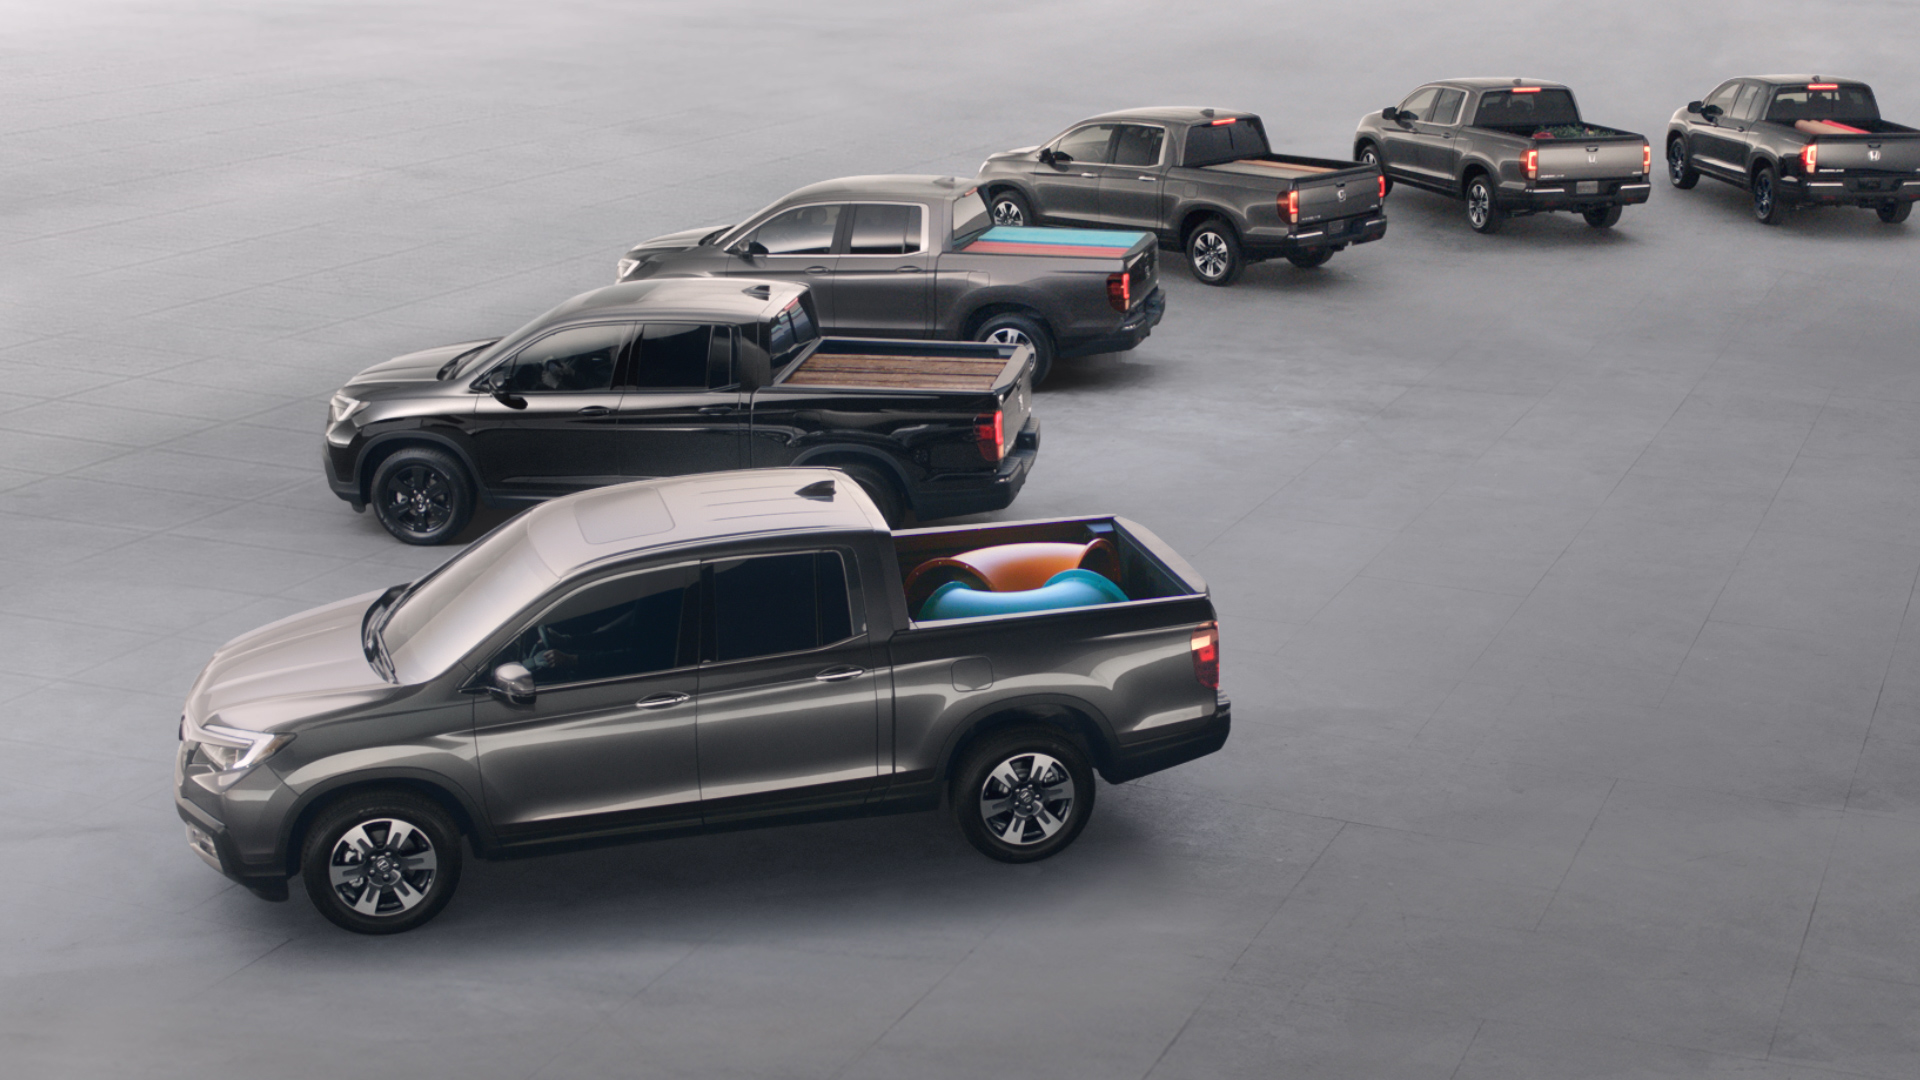 Honda Launches Marketing Campaign for the All-New 2017 Ridgeline © Honda Motor Co., Ltd.